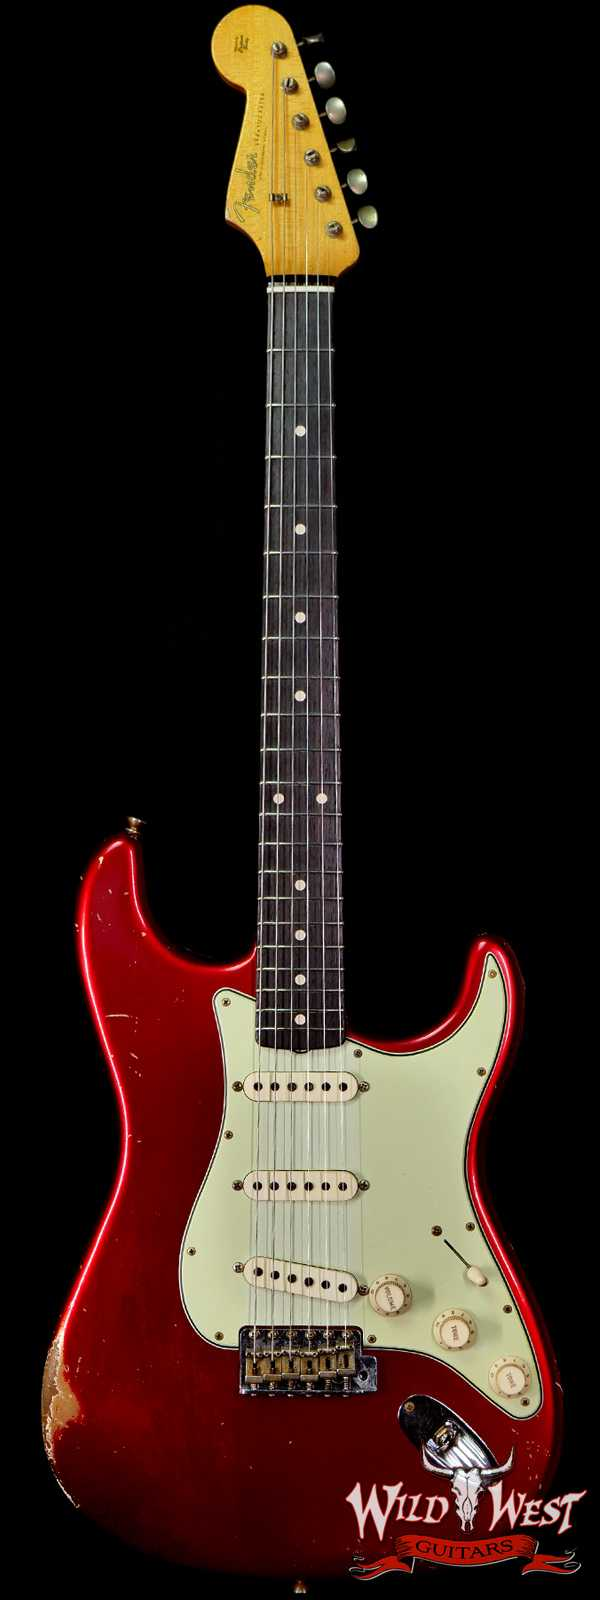 Fender Custom Shop Ron Thorn Masterbuilt 1960 Stratocaster Reverse Headstock Josefina Hand-Wound Pickups Relic Candy Apple Red